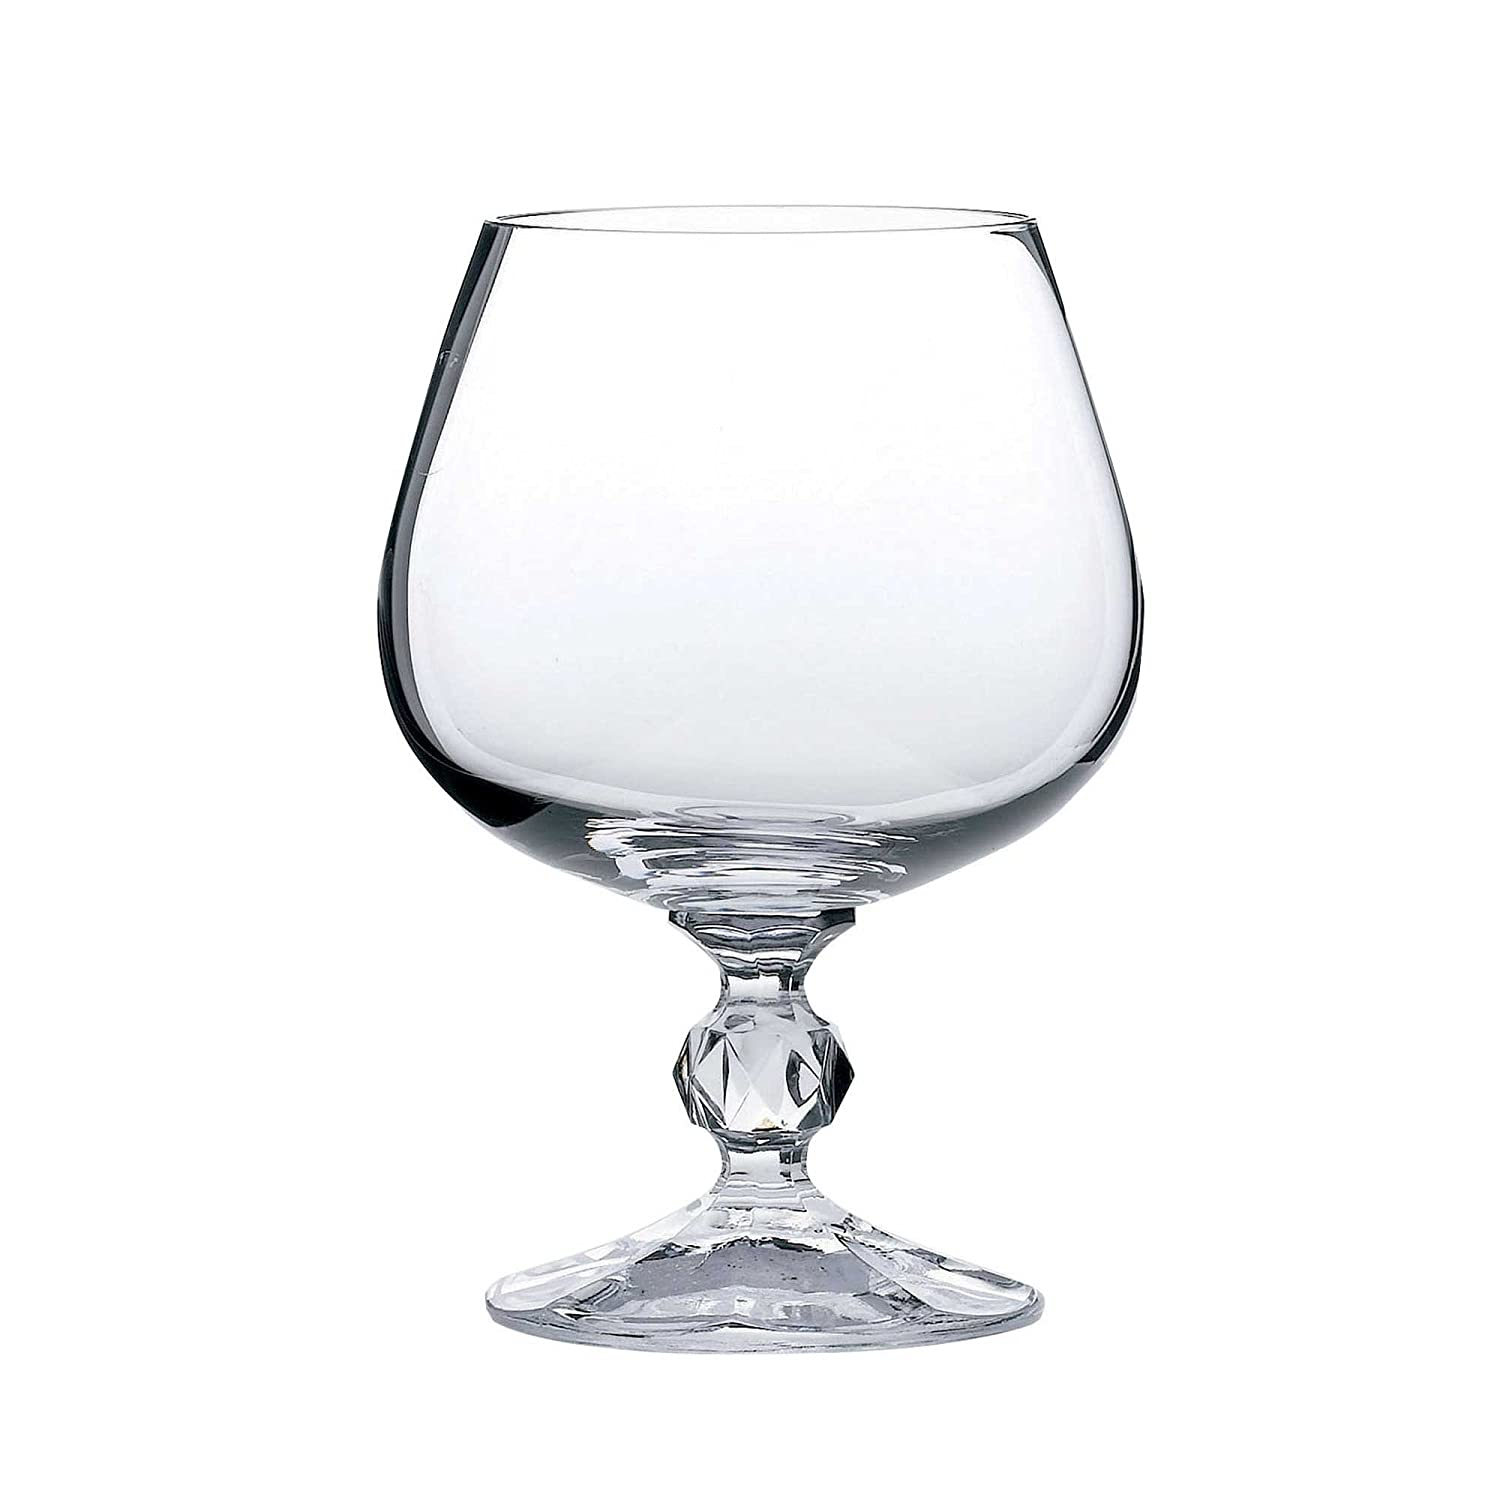 Claudia Cystal Brandy Glasses 8.75oz / 250ml - Set of 6 - Bohemia Klaudie Goblets Bohemia Crystal Glass